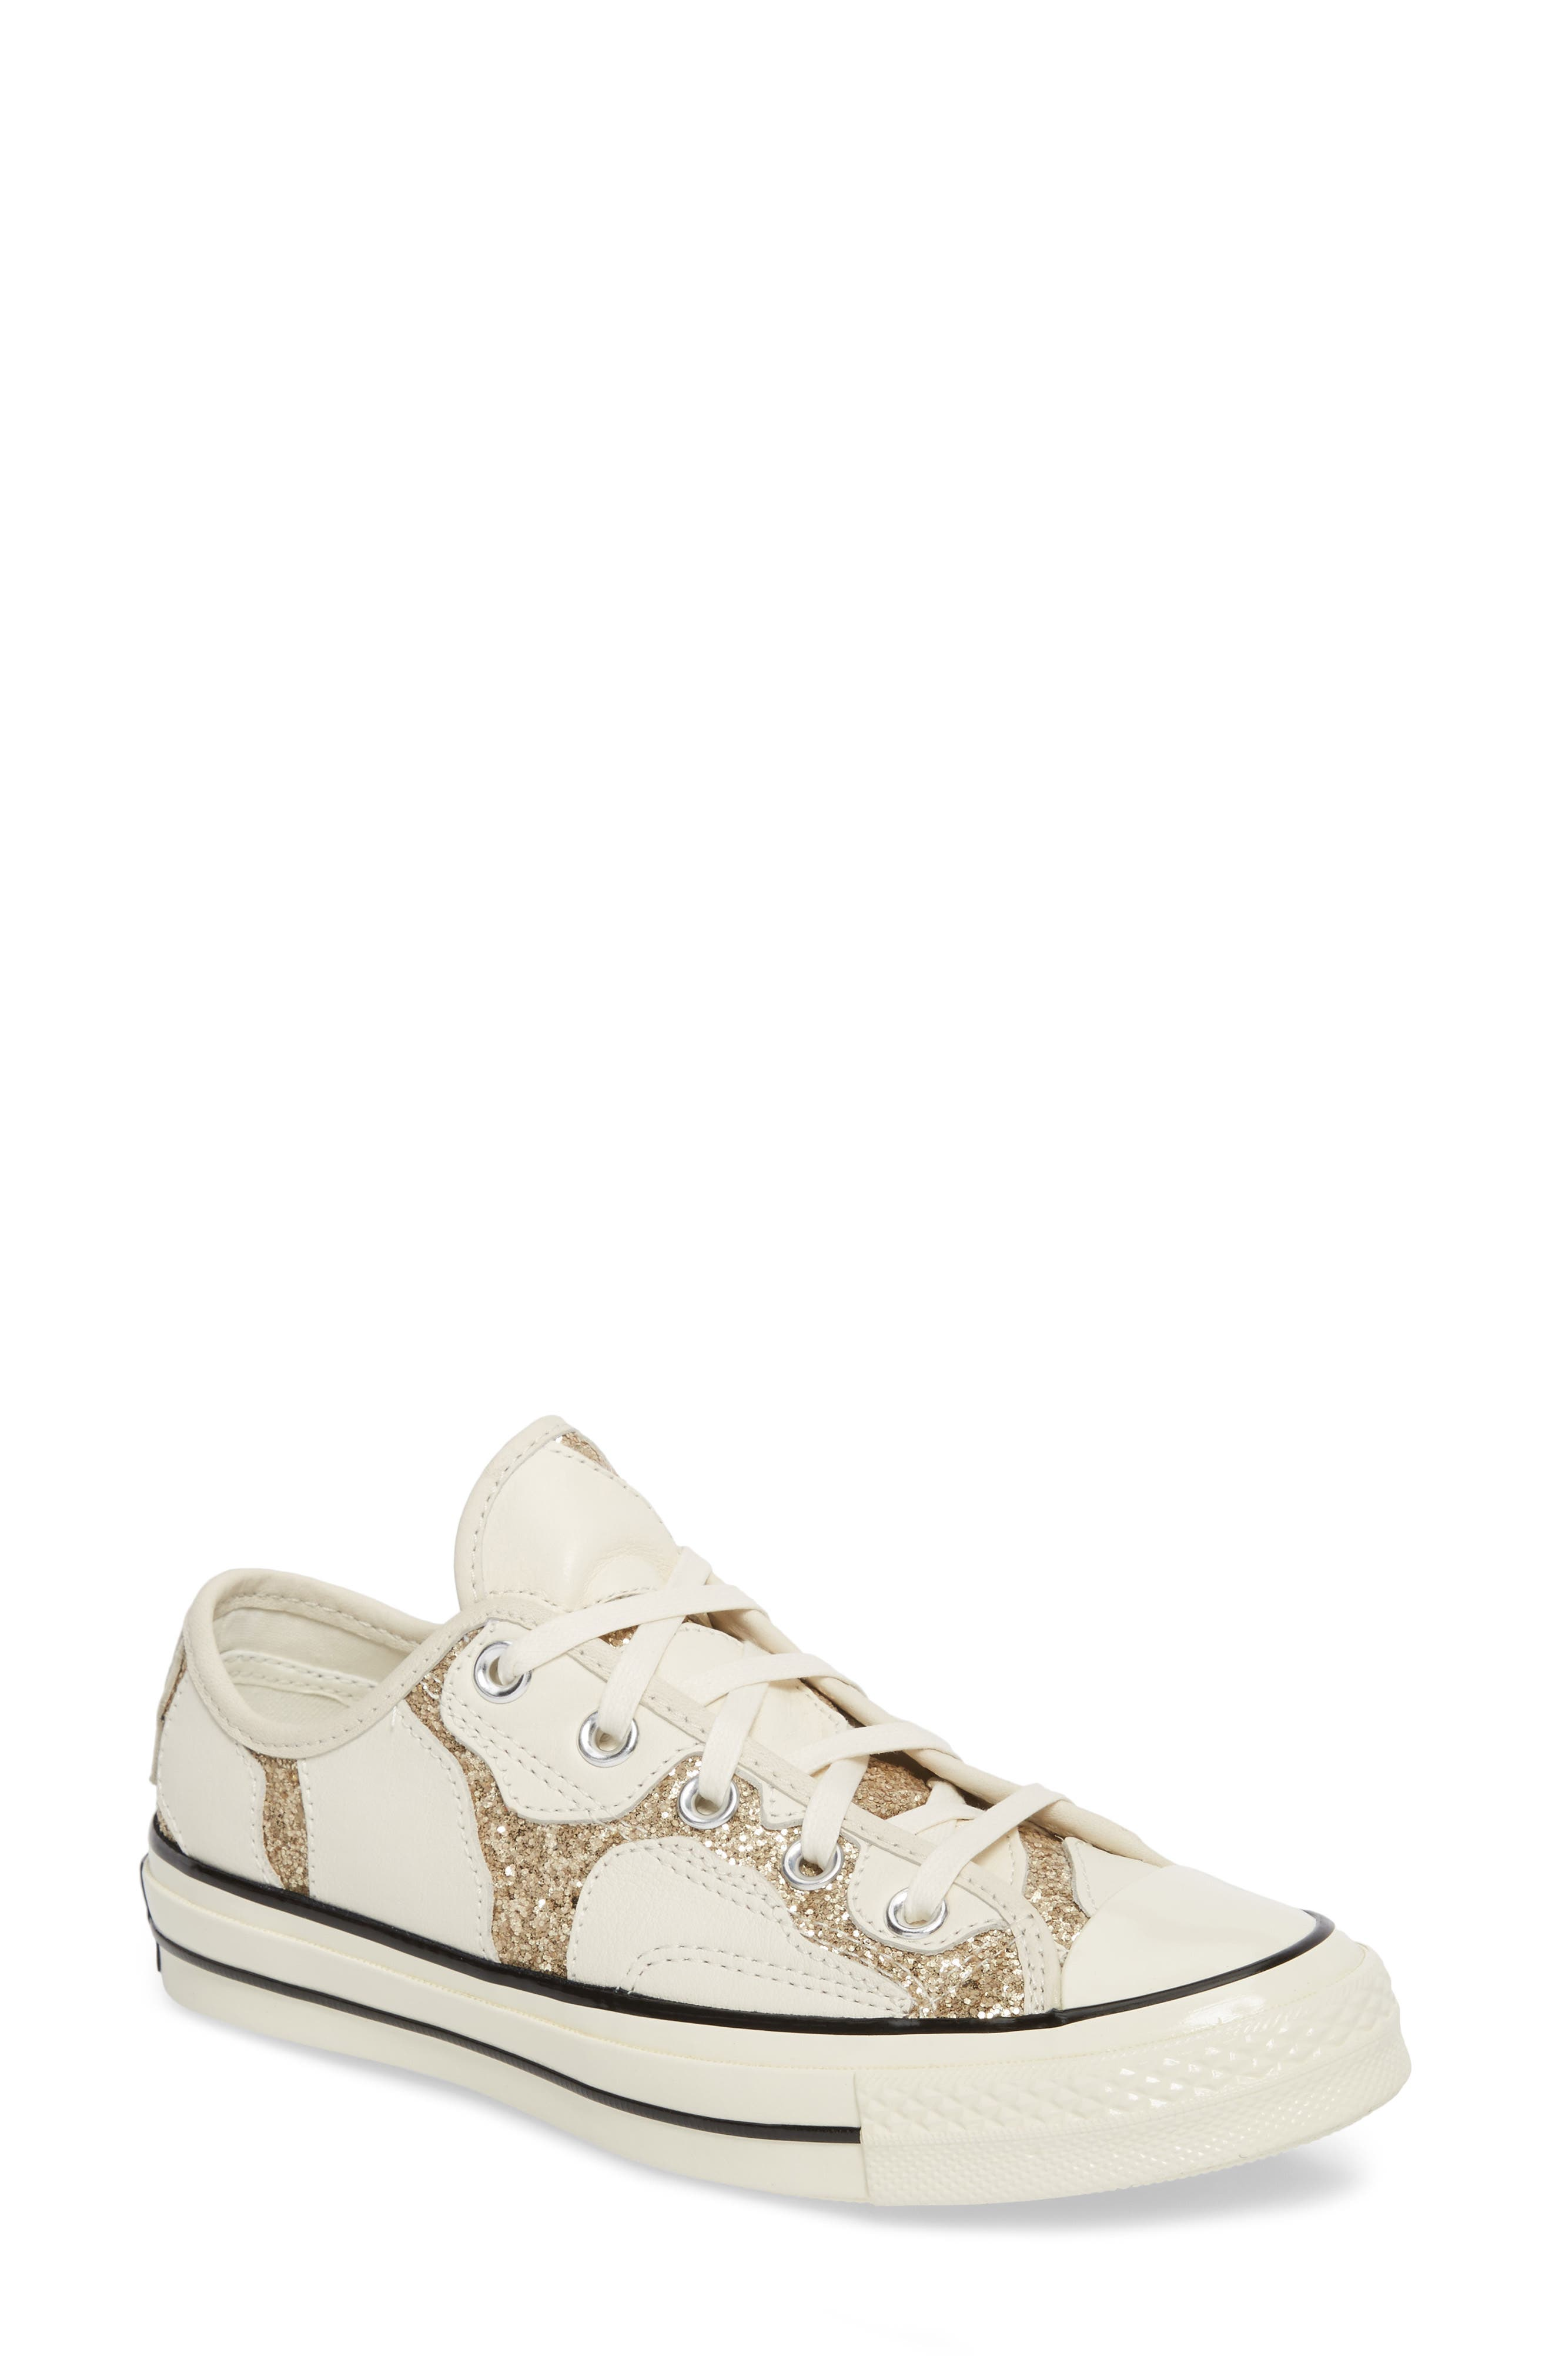 Main Image - Converse Chuck Taylor® All Star® Animal Glitter Low Top Sneaker (Women)